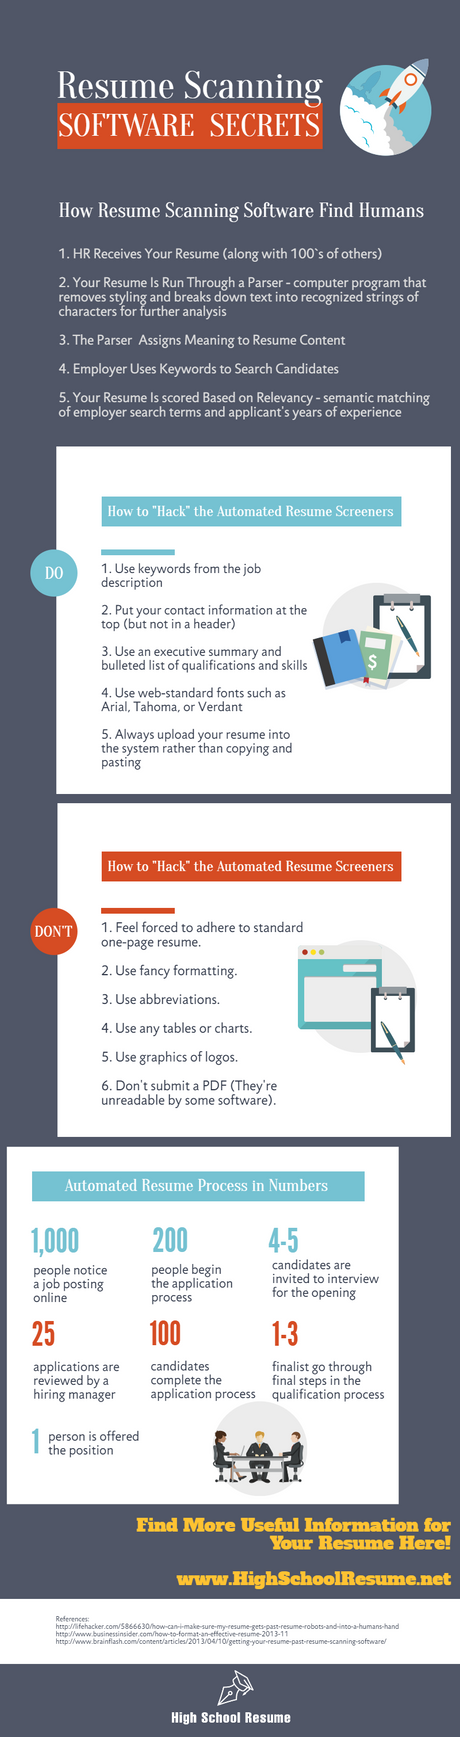 resume scanning software secrets by highschoolresume - Resume Scanning Software